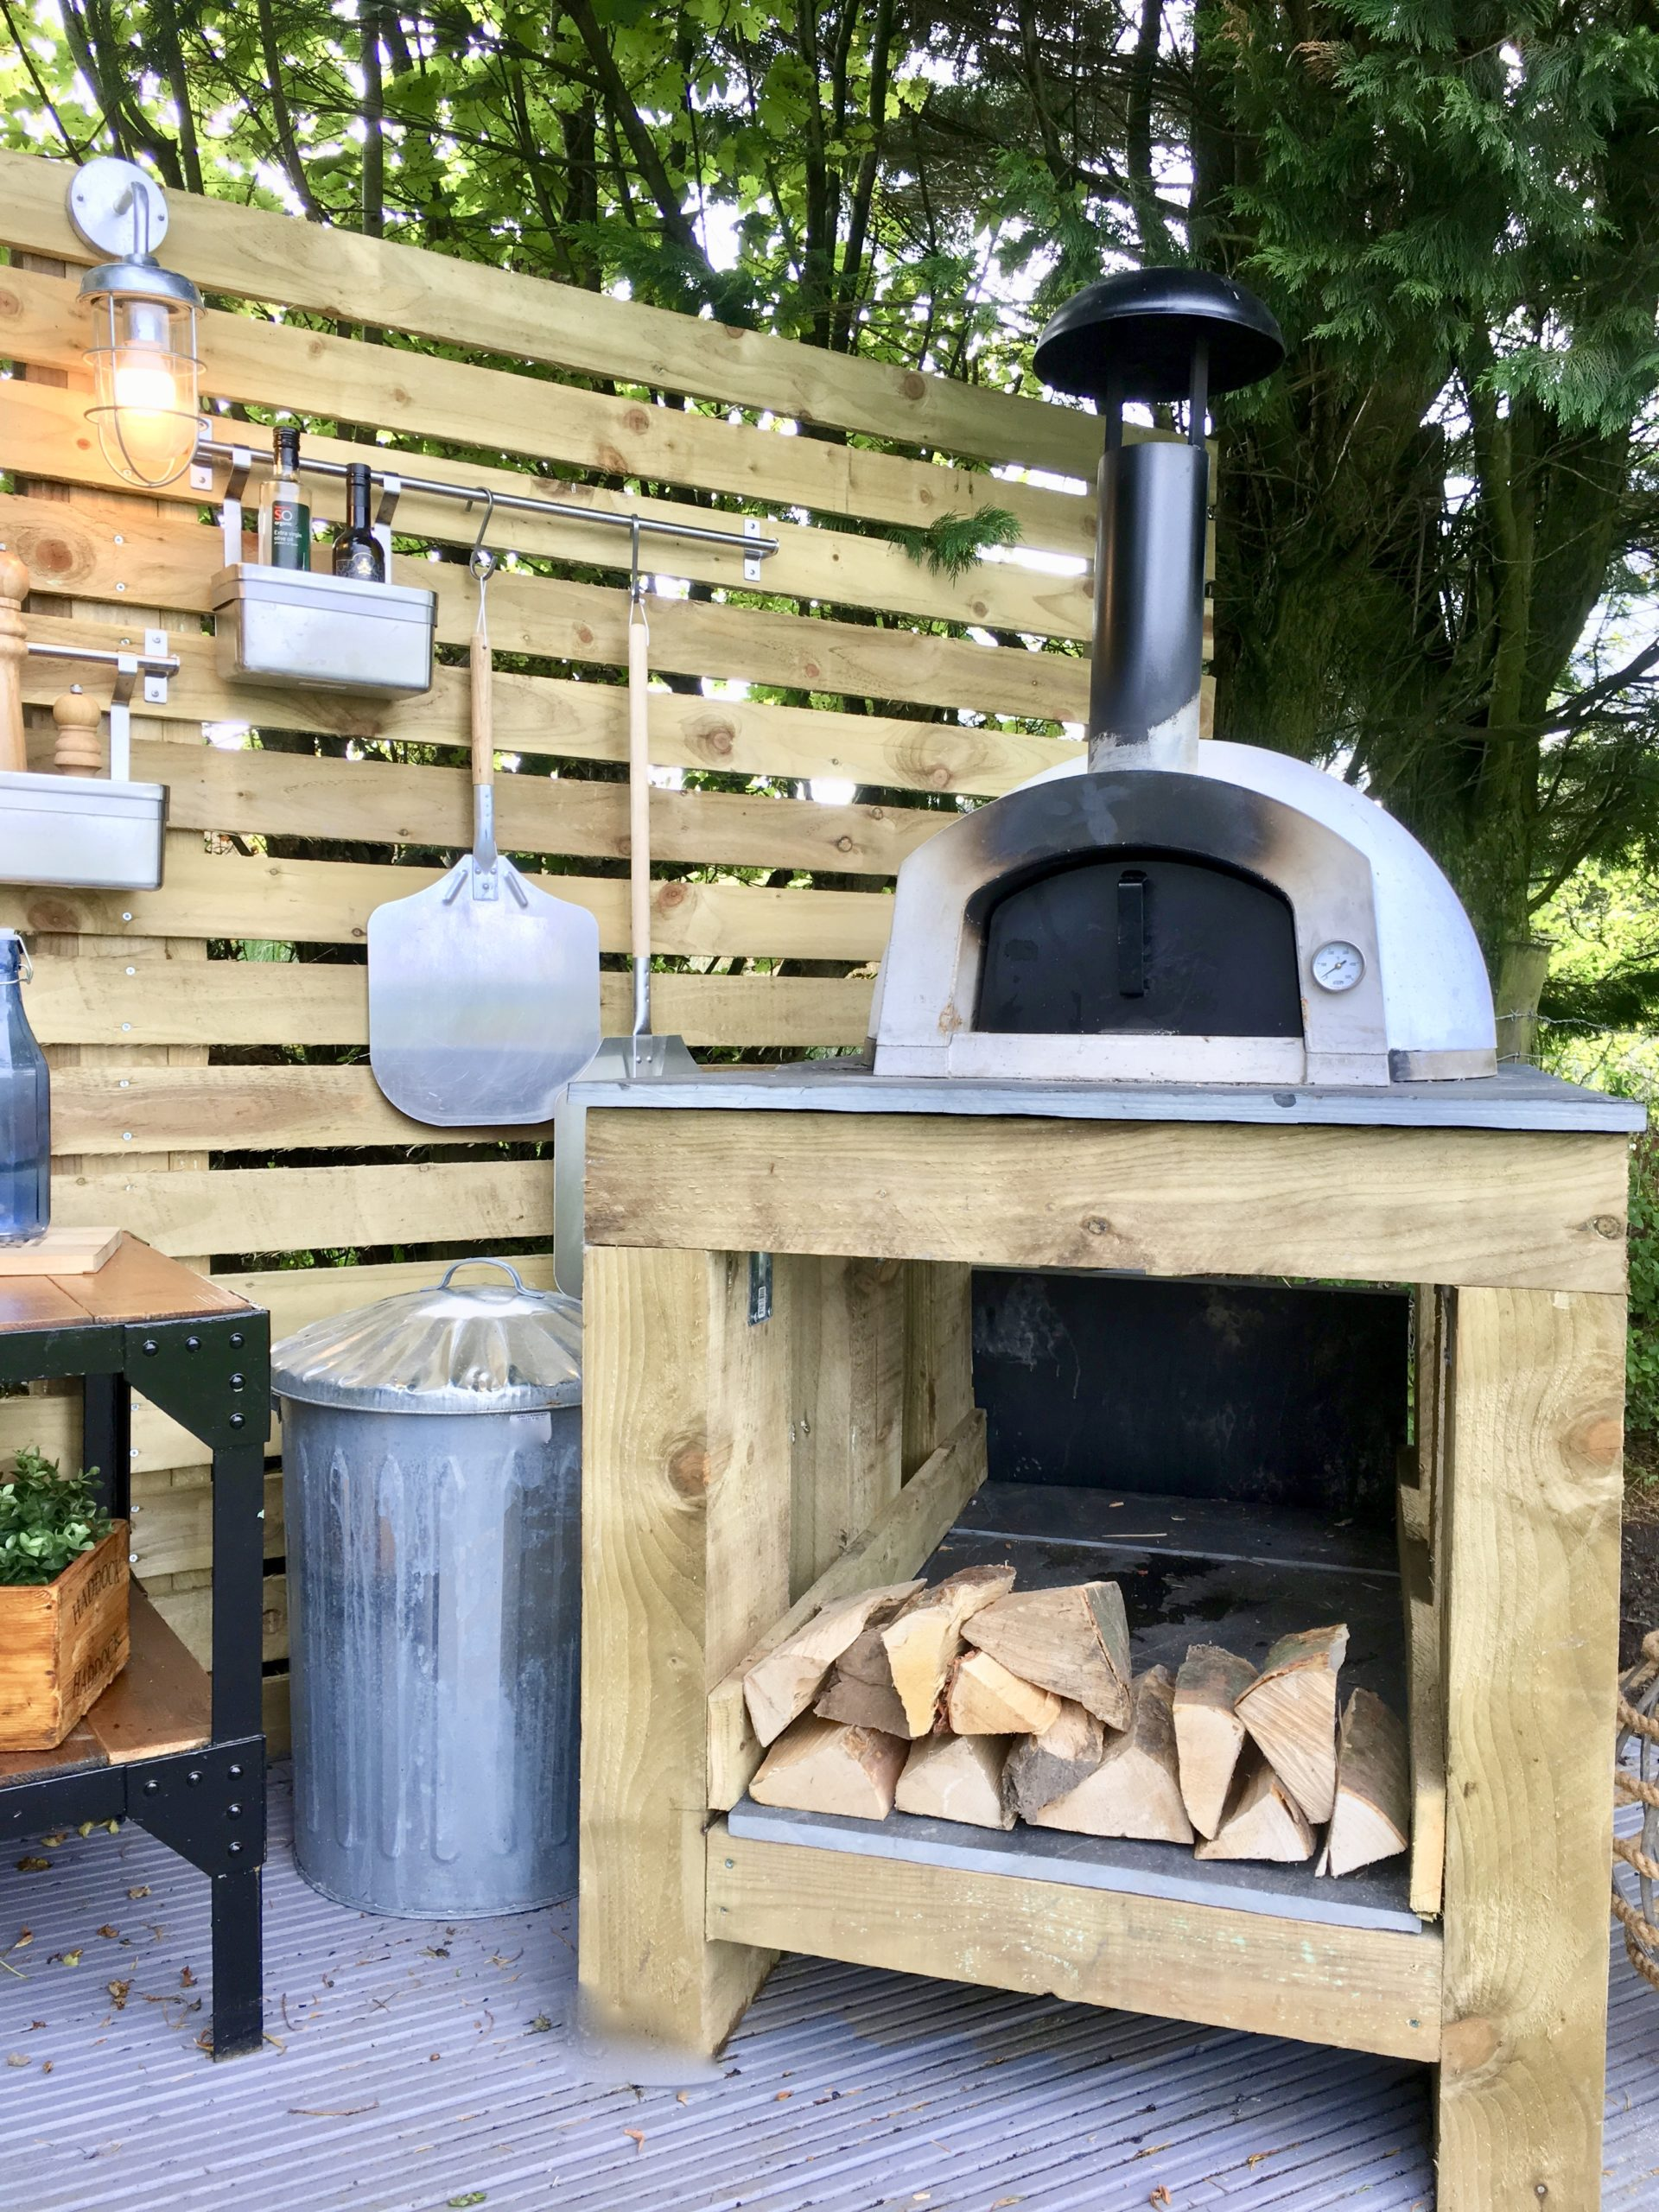 Pizza oven in outdoor kitchen on stand made from rustic sleepers